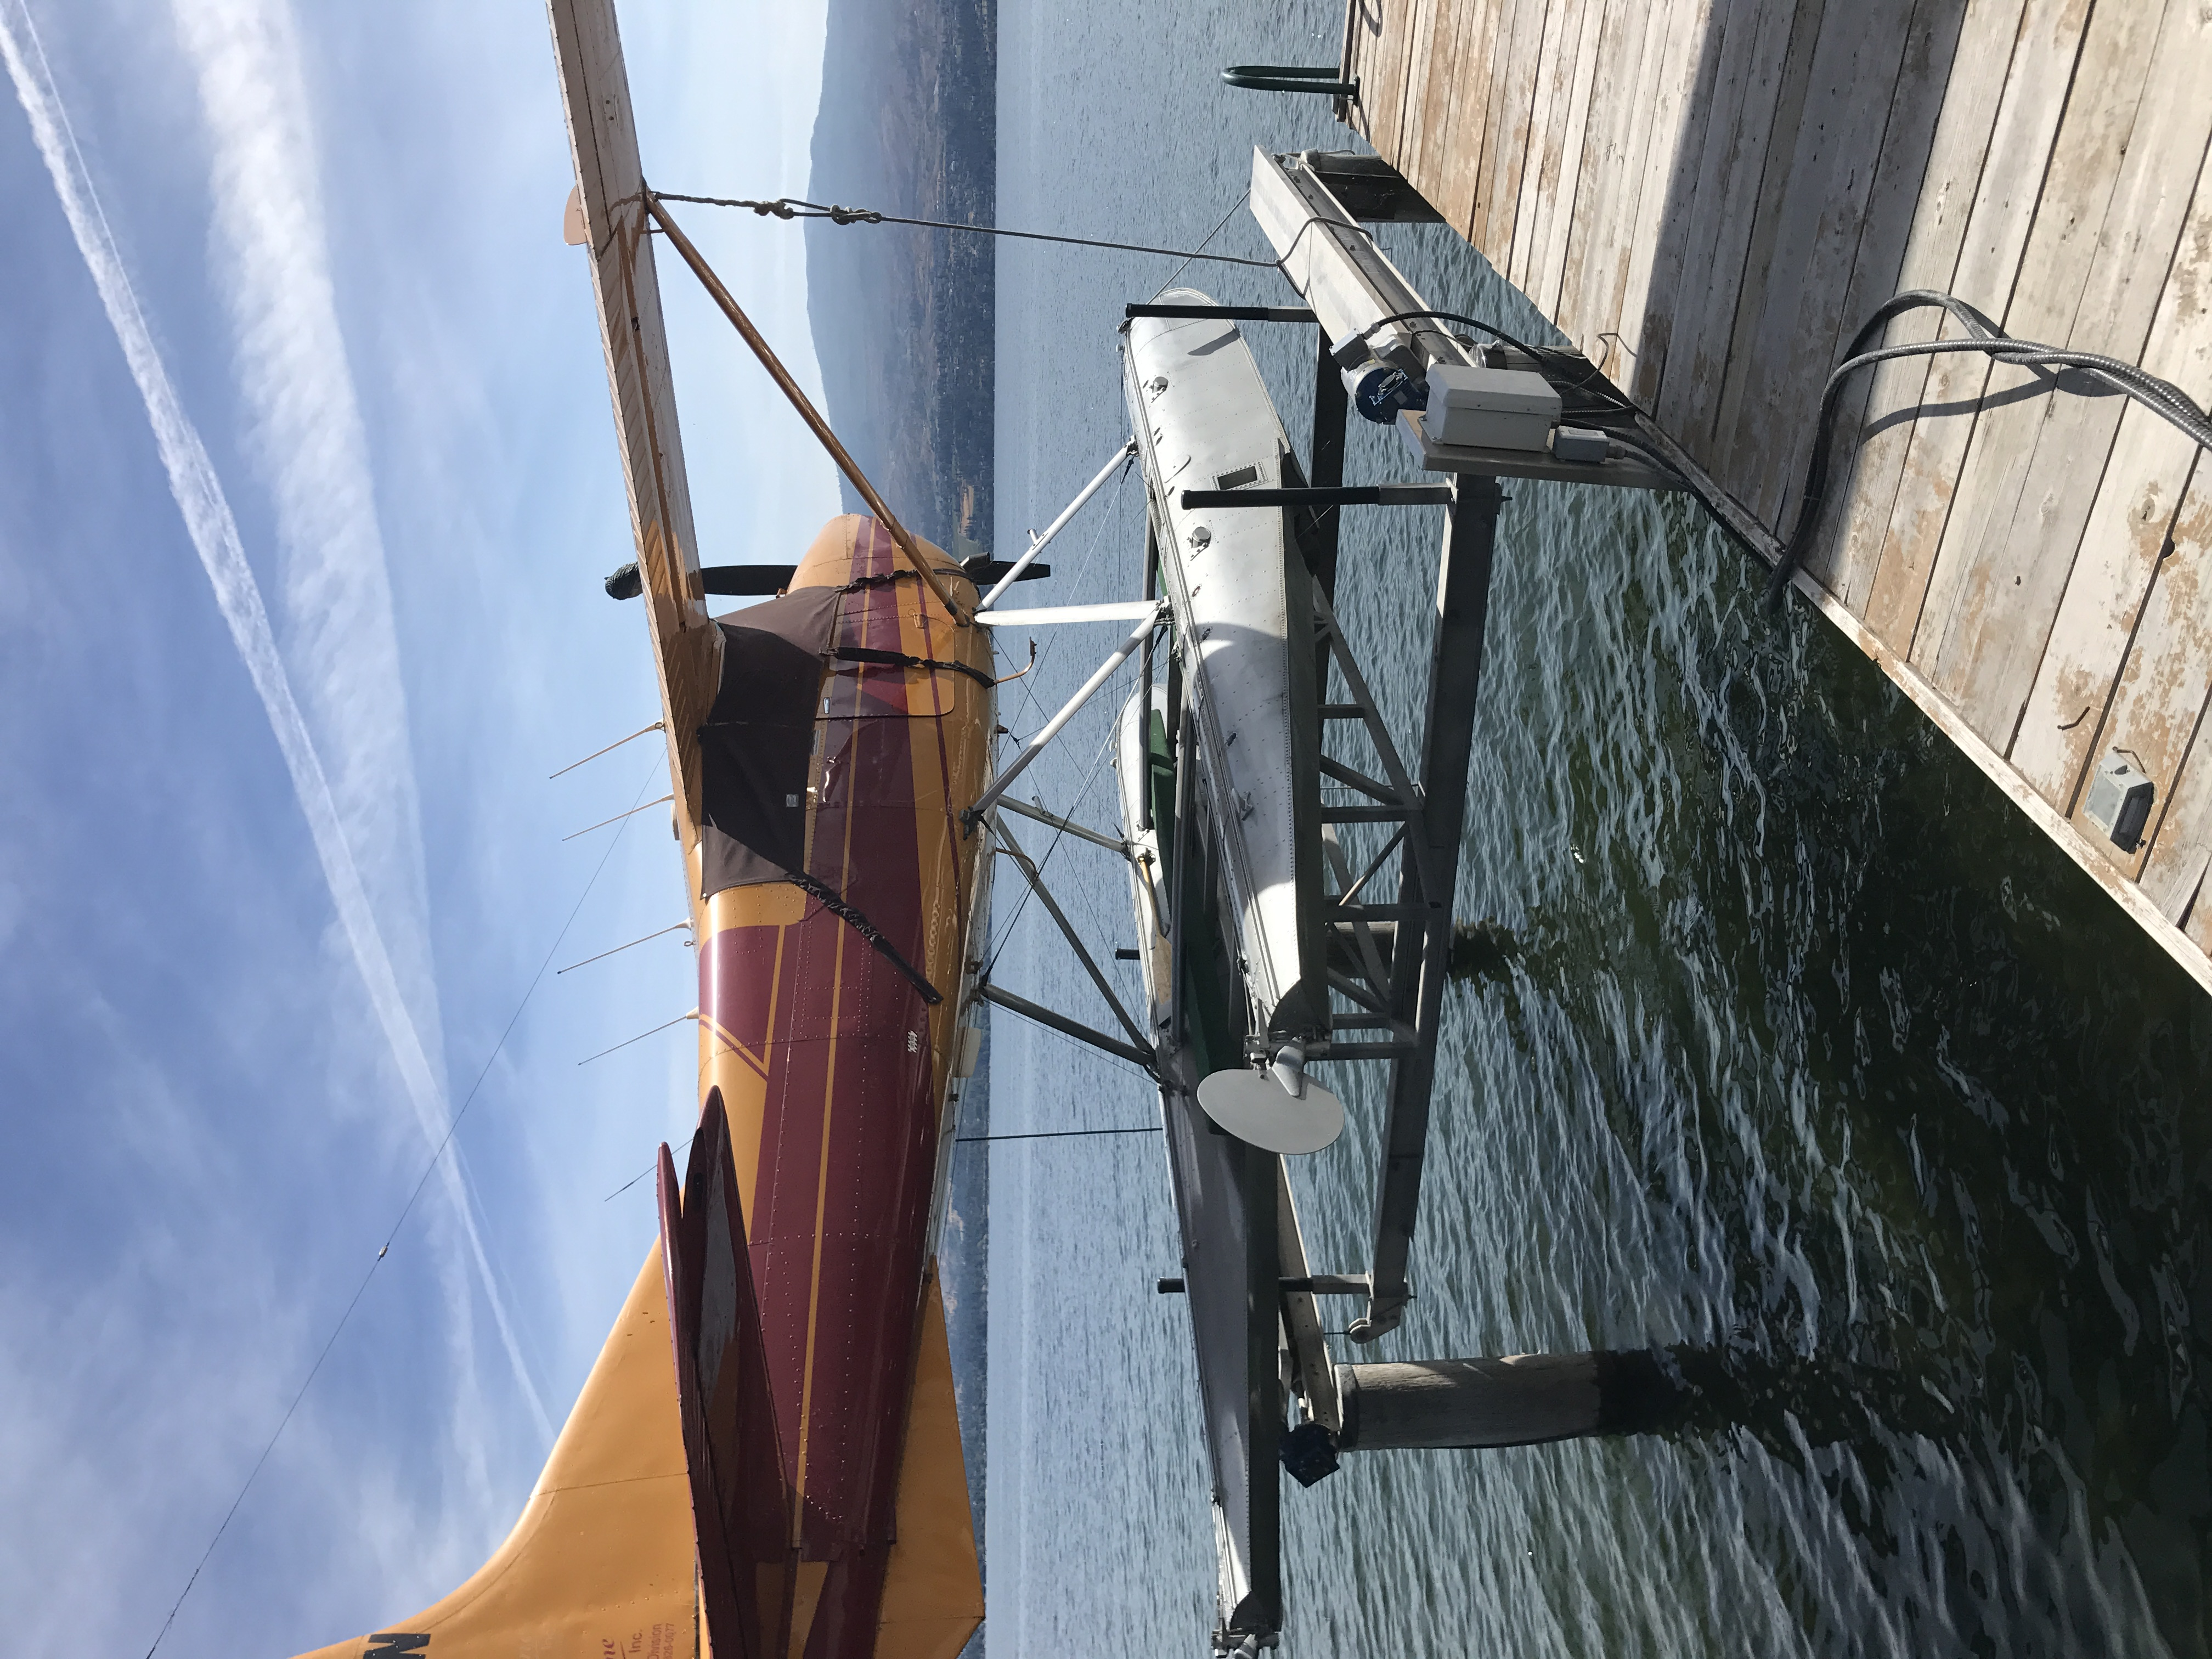 Aircraft Listing - Cessna 185 listed for sale